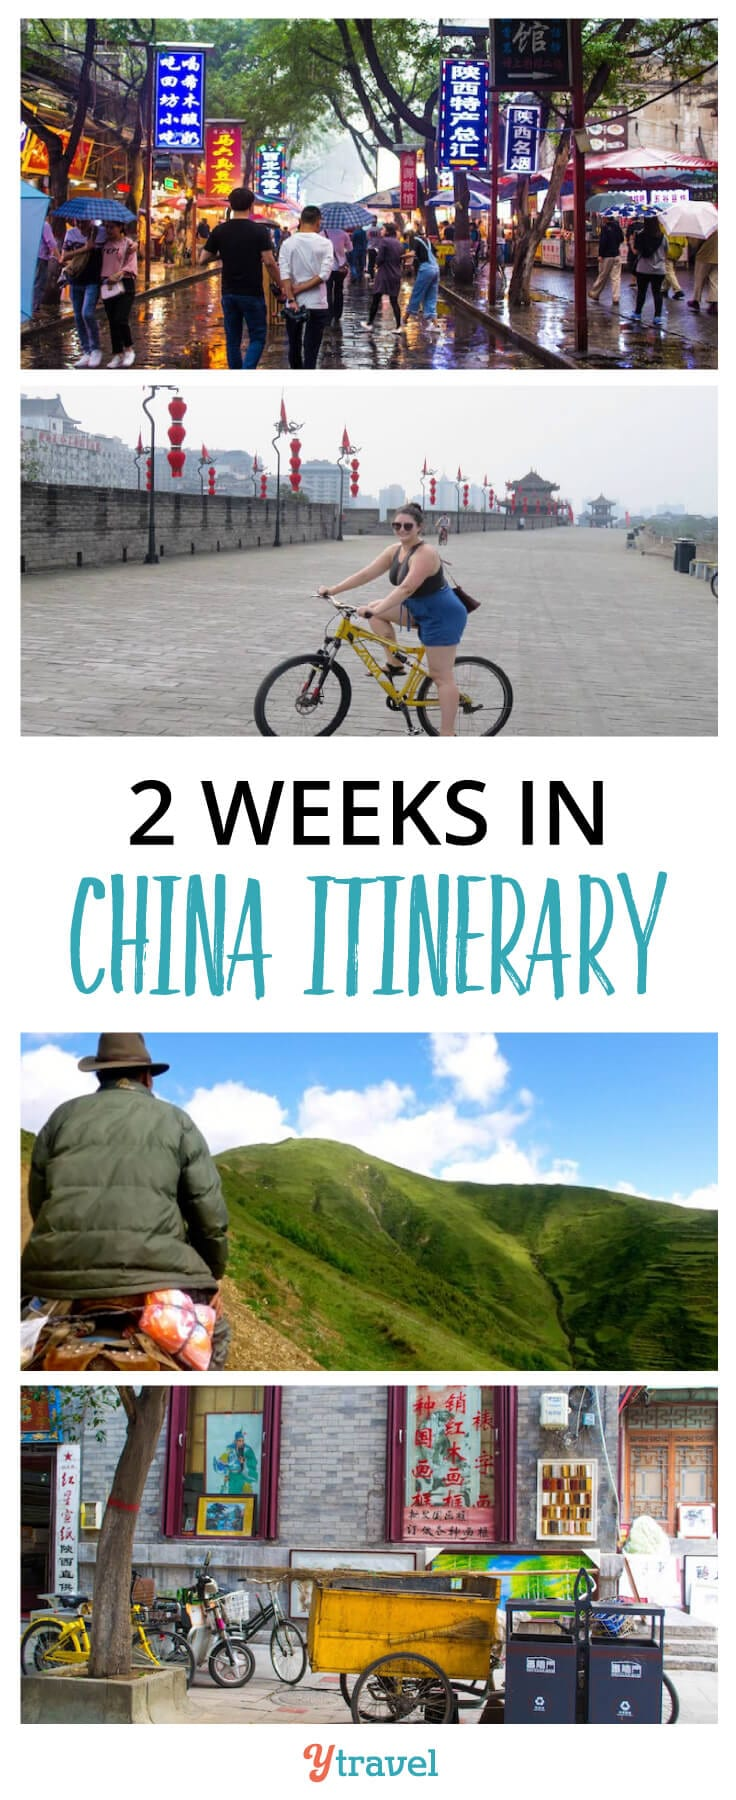 2 Week China Itinerary. Tips on the best places to visit in China, plus info on tours and accommodation.